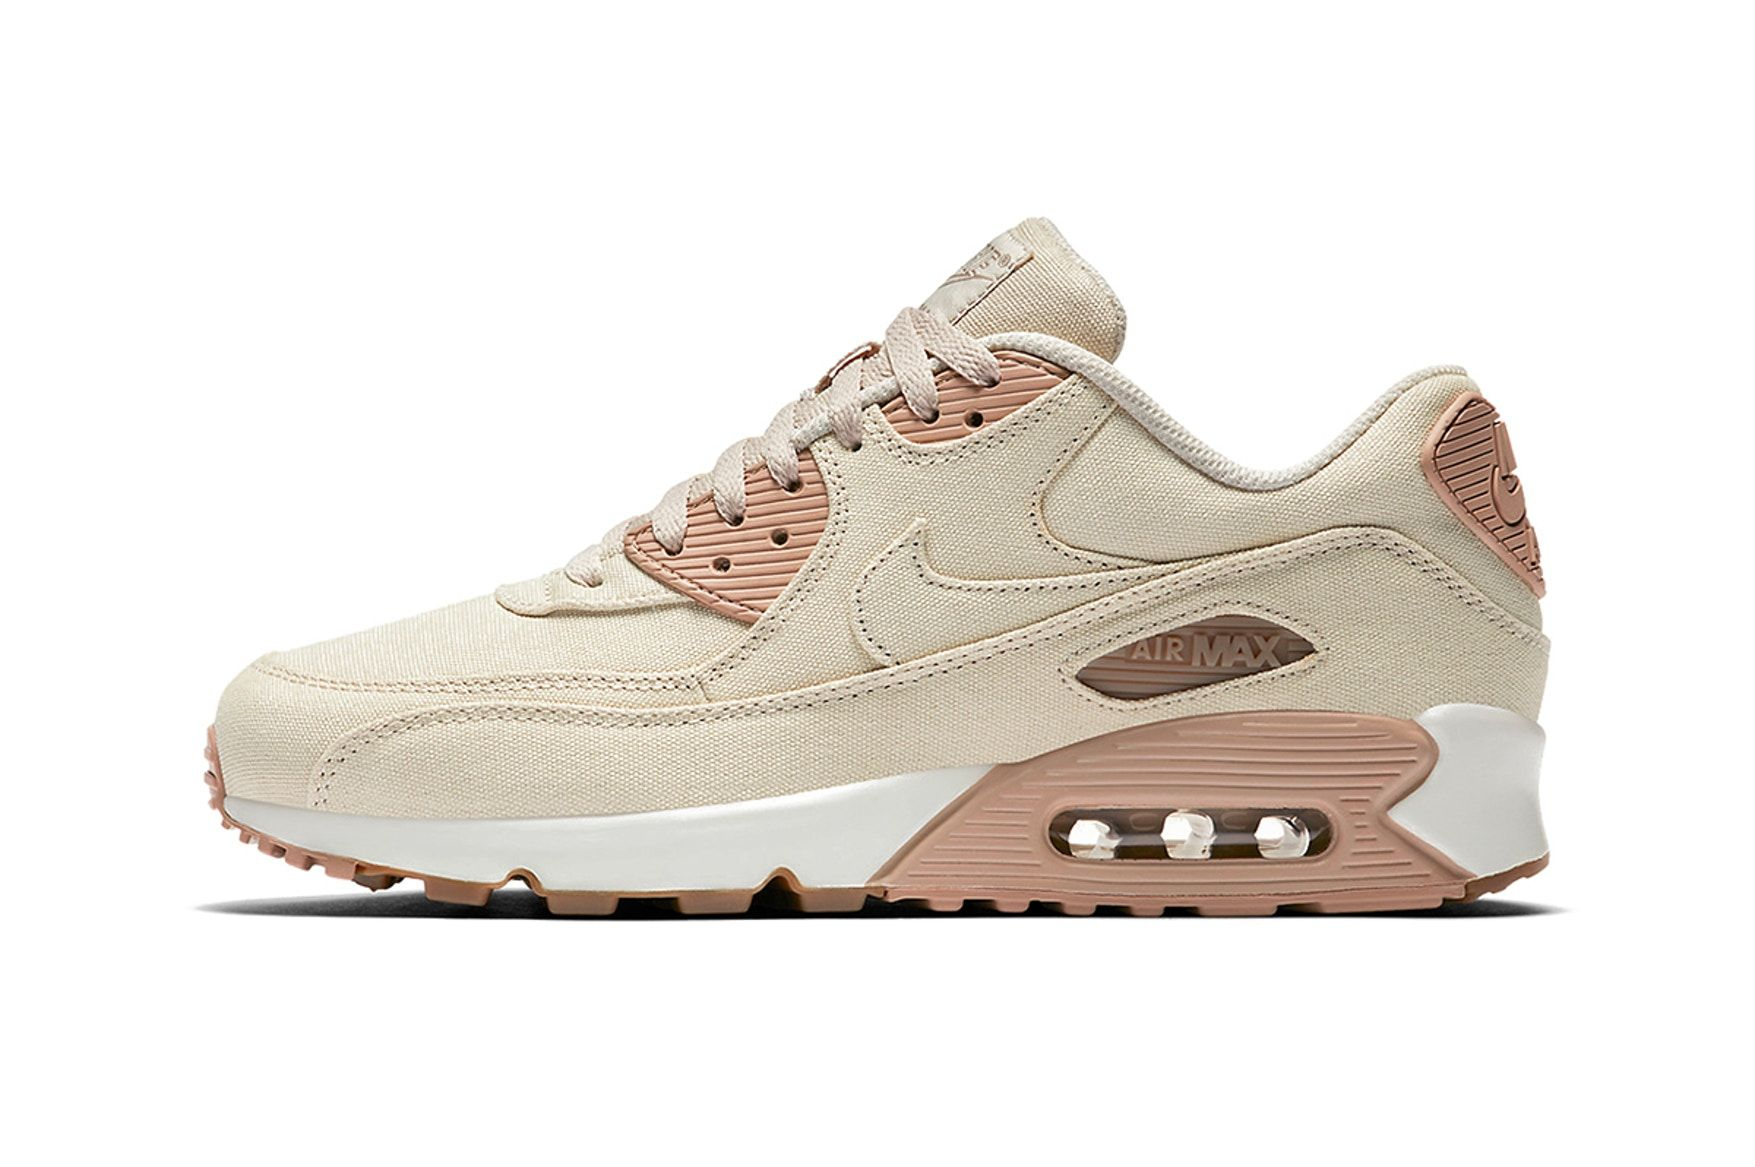 The New Nike Air Max 90 Is A Millennial Dreamboat